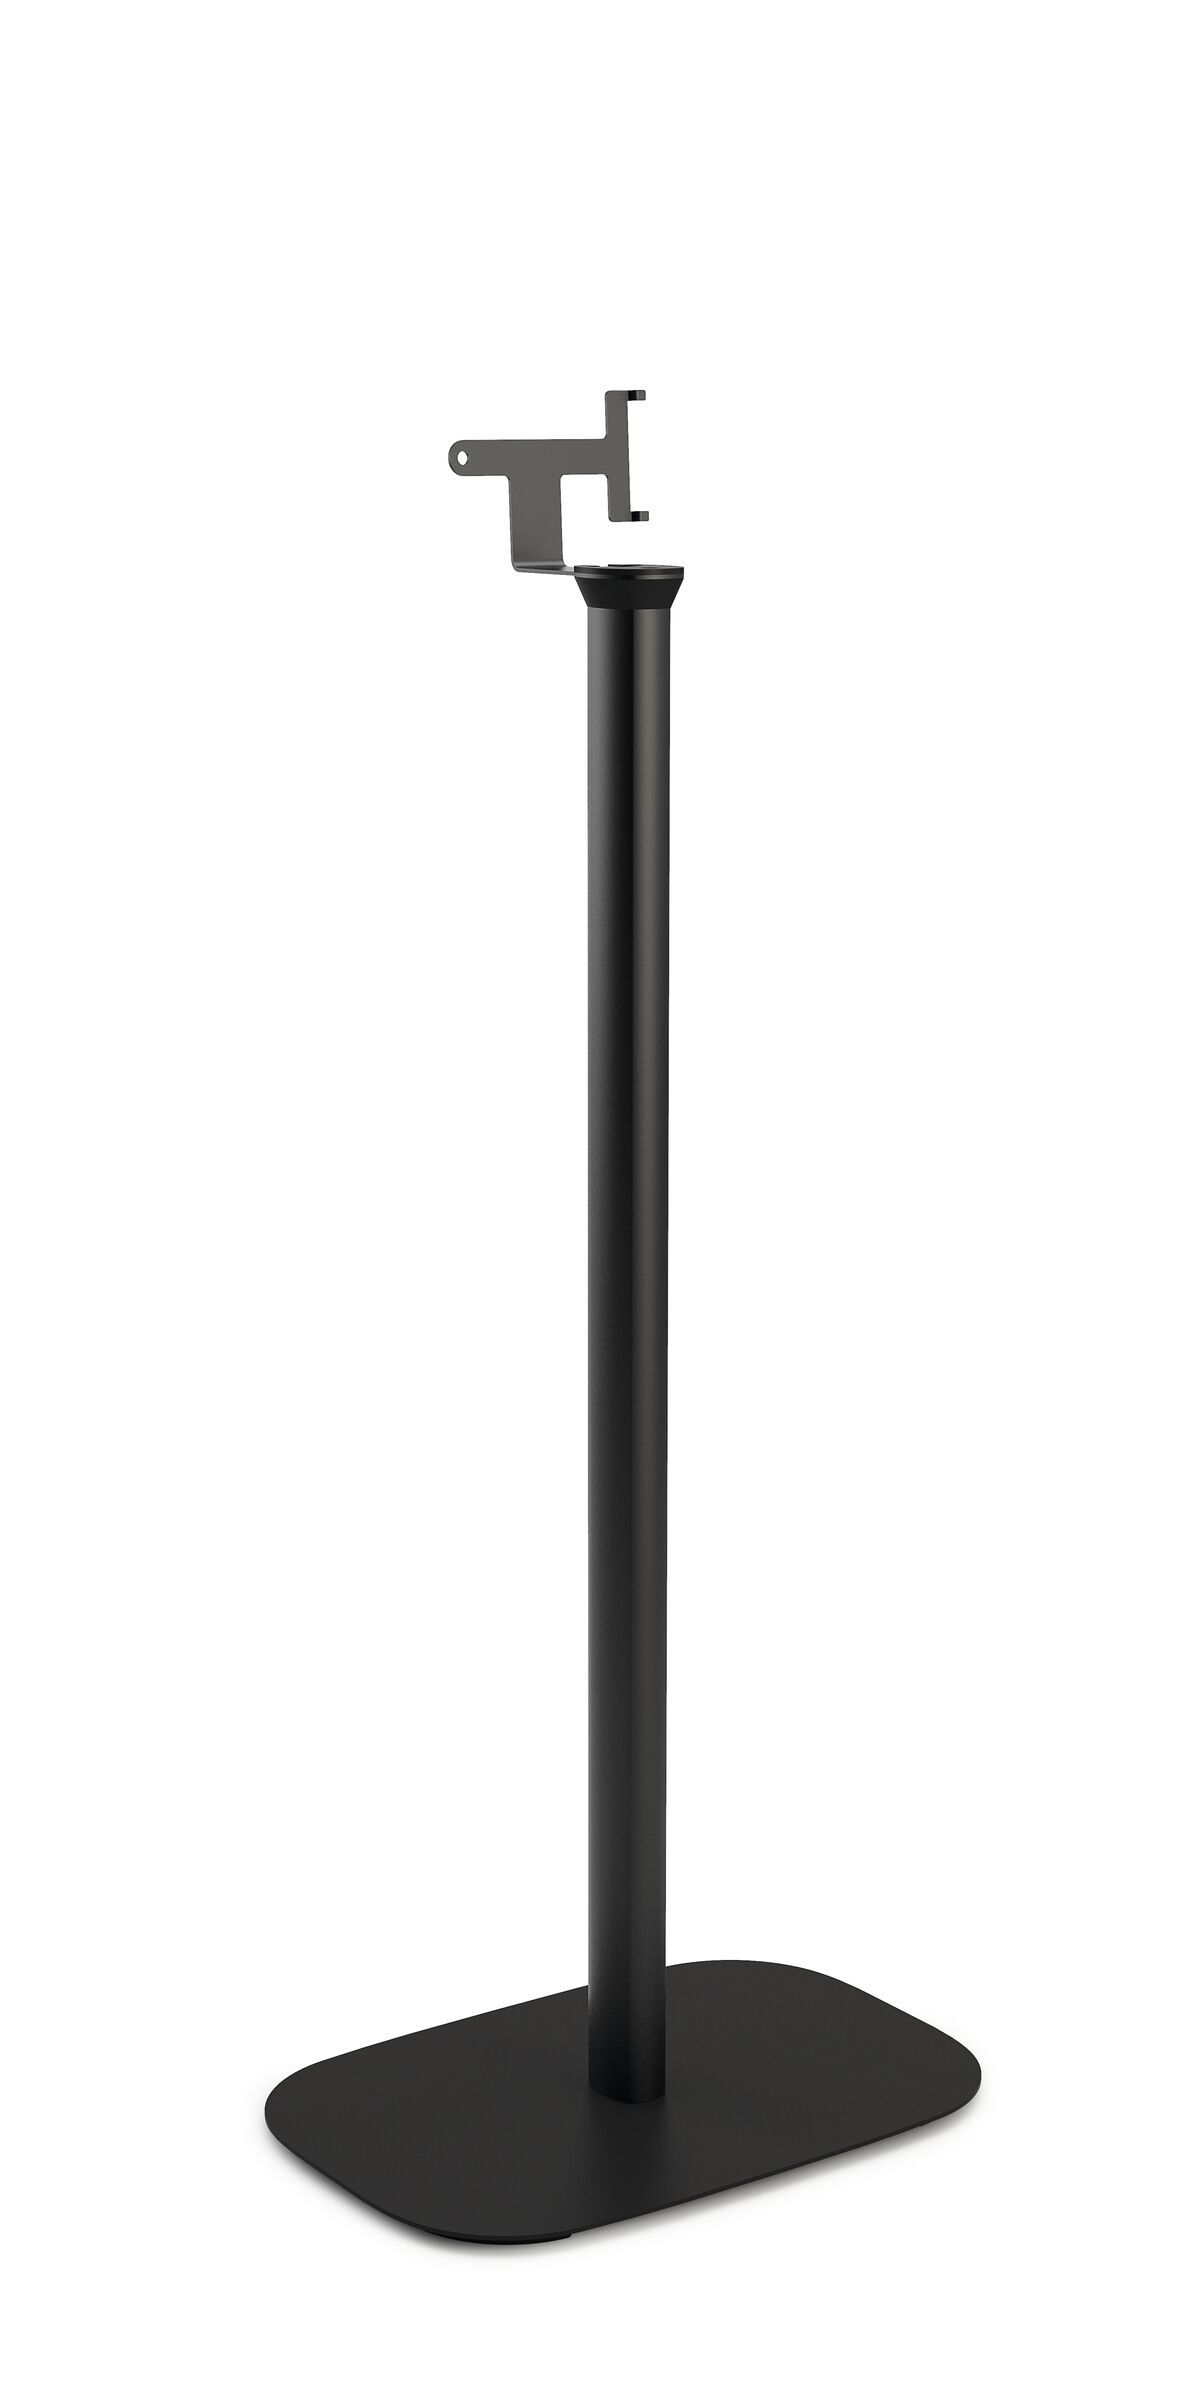 Vogel's SOUND 4303 Speaker Stand for SONOS PLAY:3 (black) - Product